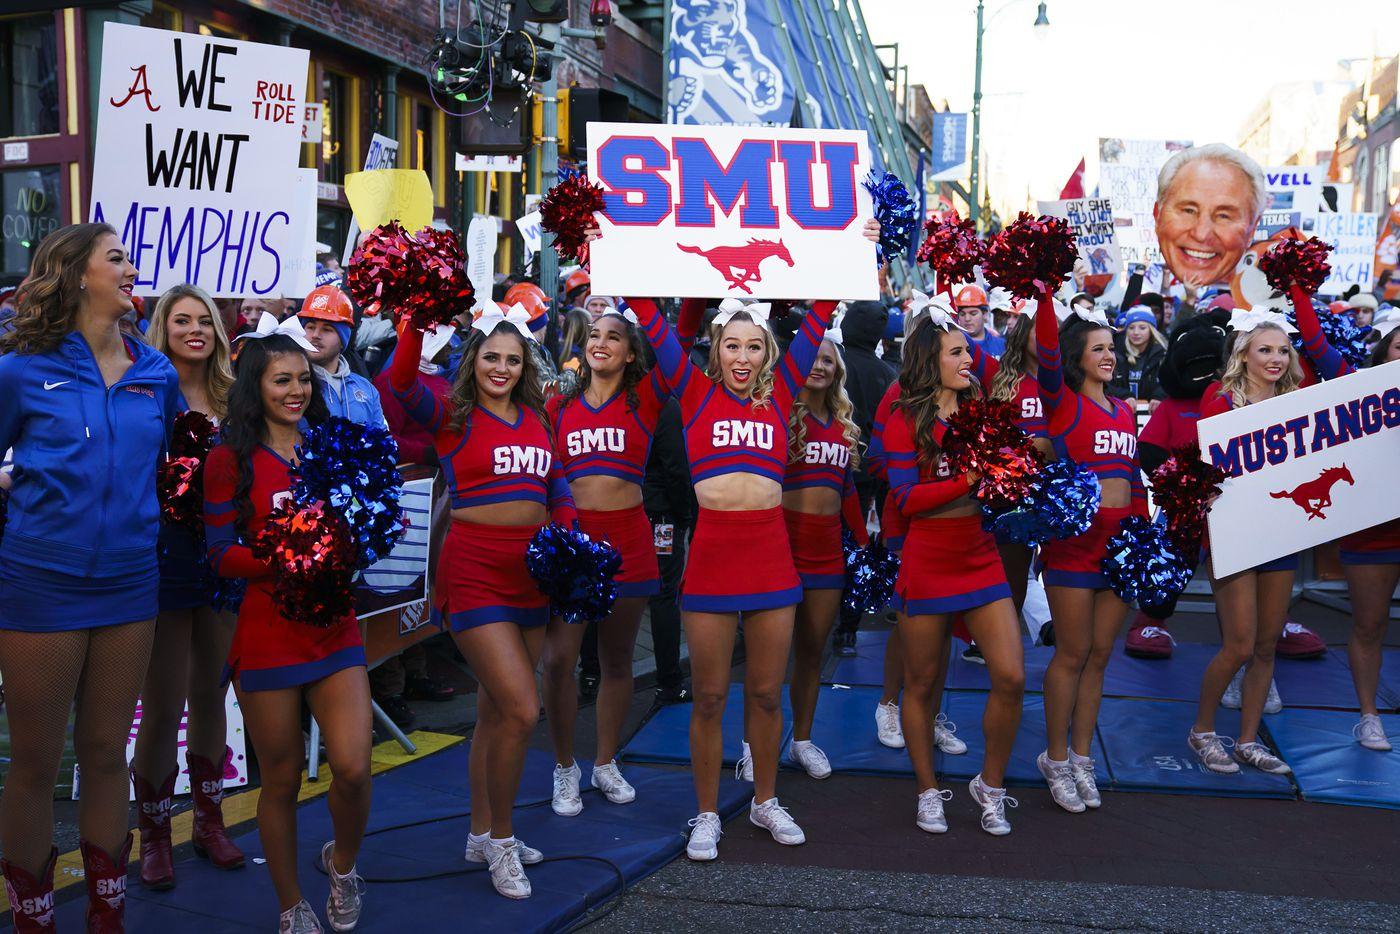 SMU cheerleaders yell on the set of ESPN College GameDay before an NCAA football game between Memphis and SMU on Saturday, Nov. 2, 2019, in Memphis, Tenn.